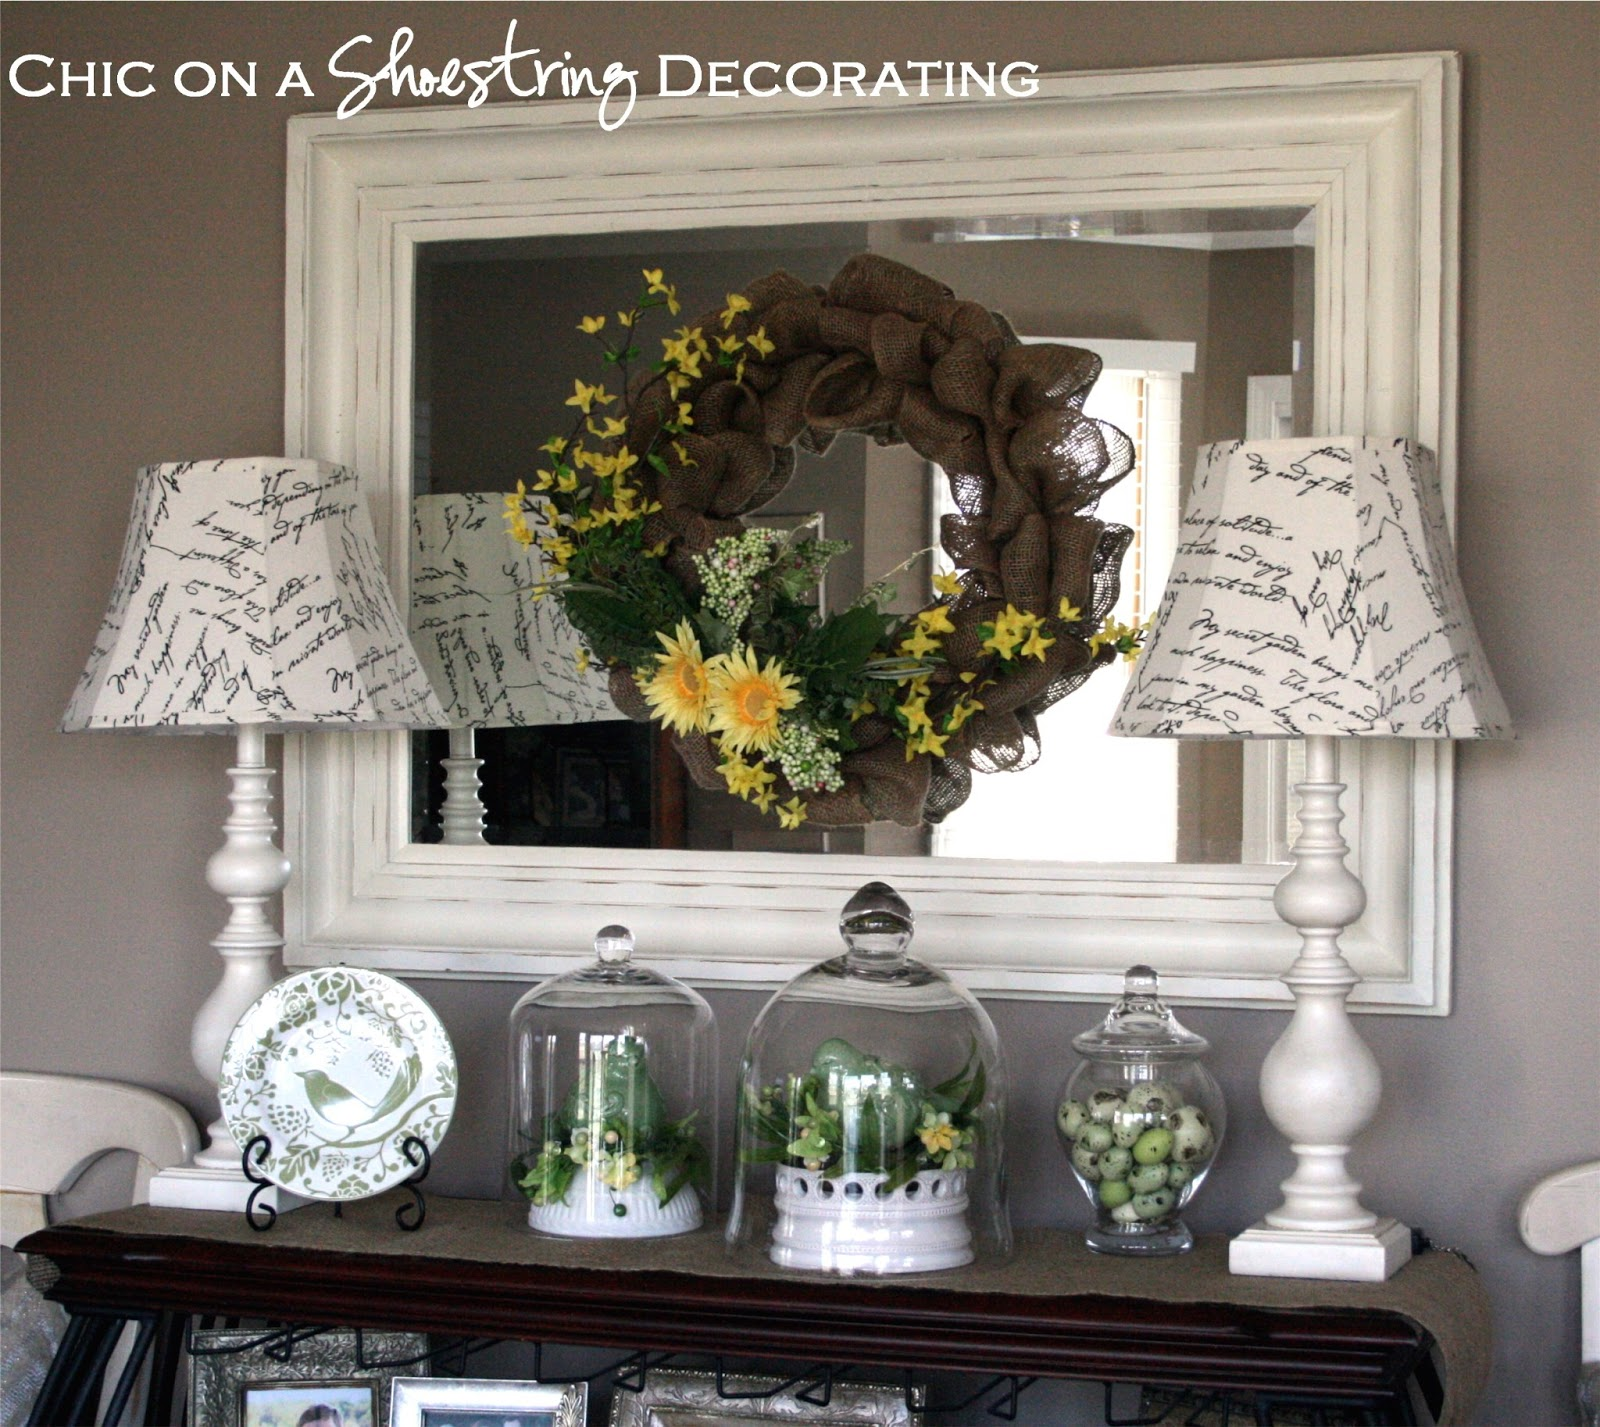 Spring Decorating: Chic On A Shoestring Decorating: Spring Decor, A Kitchen